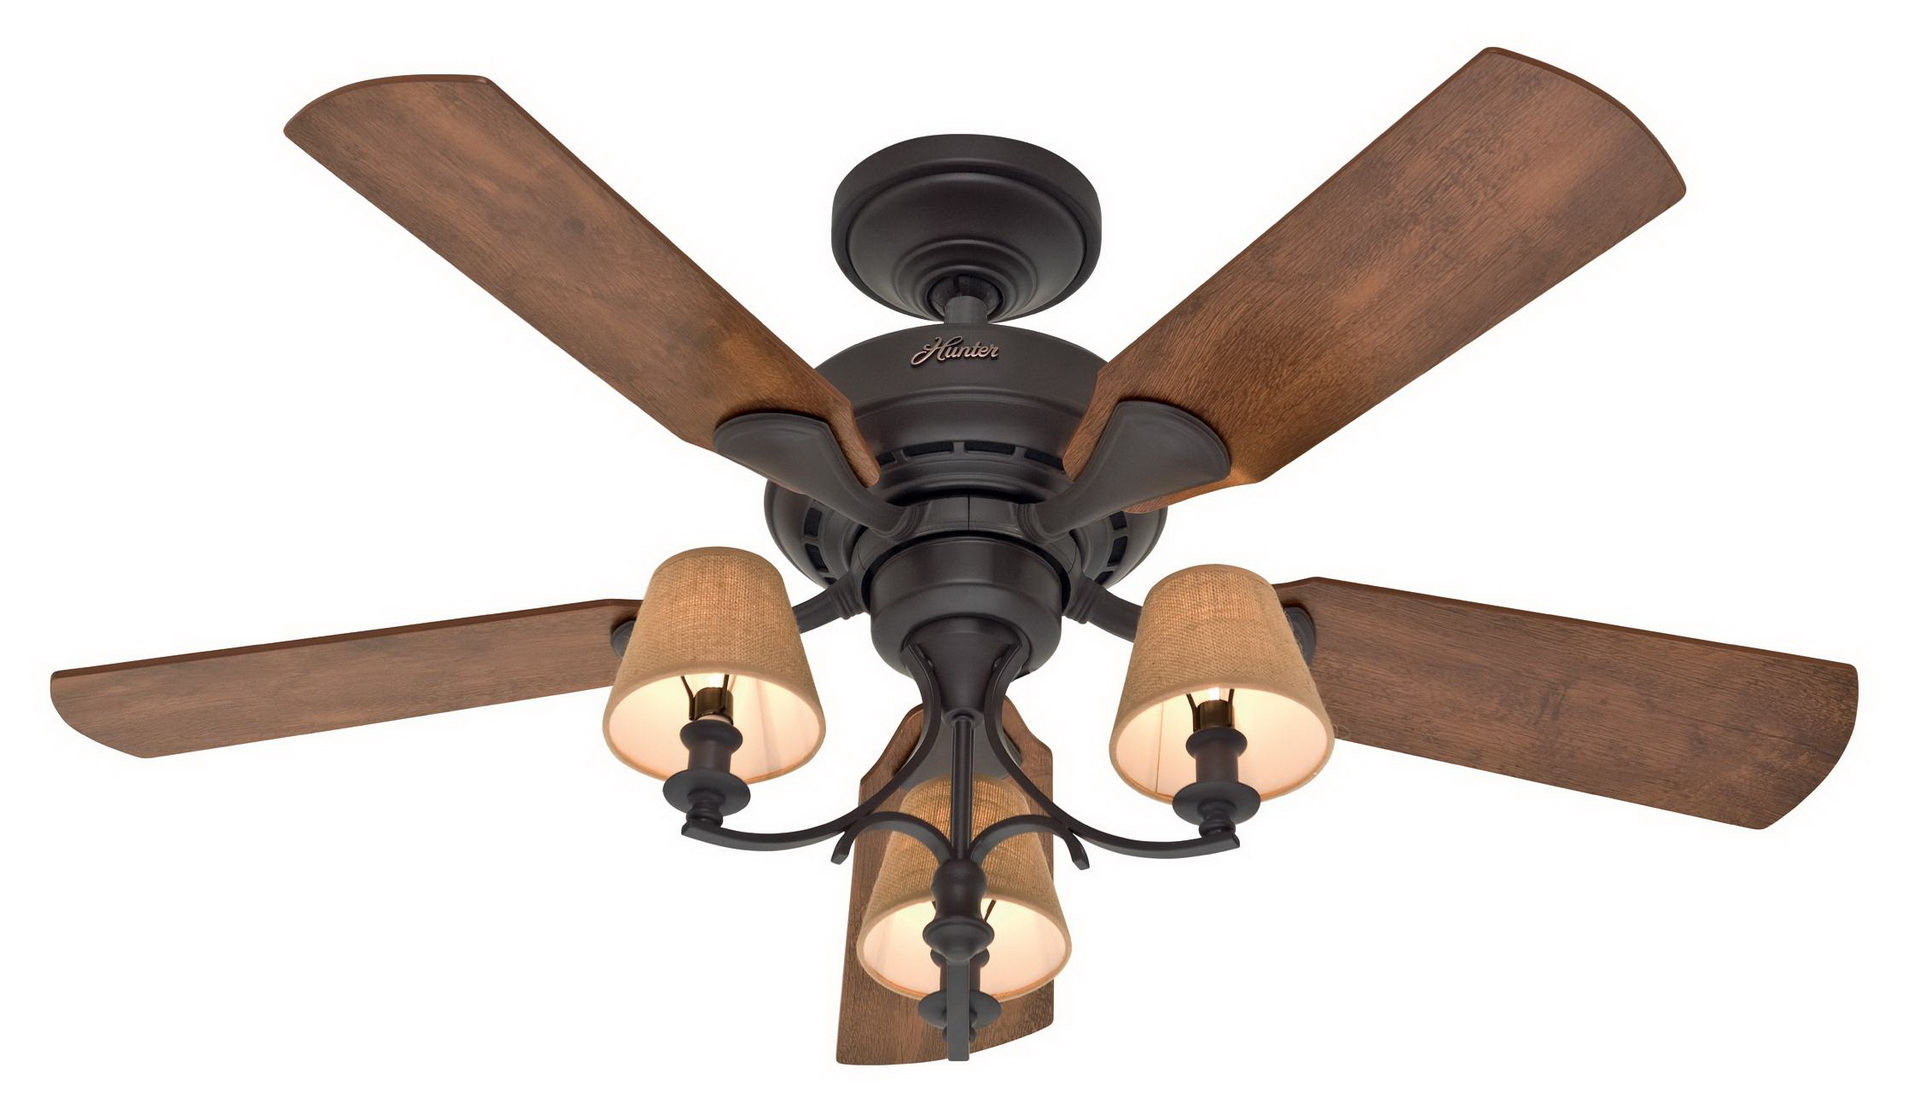 Texas star ceiling fan 12 ways of designs that will not affected